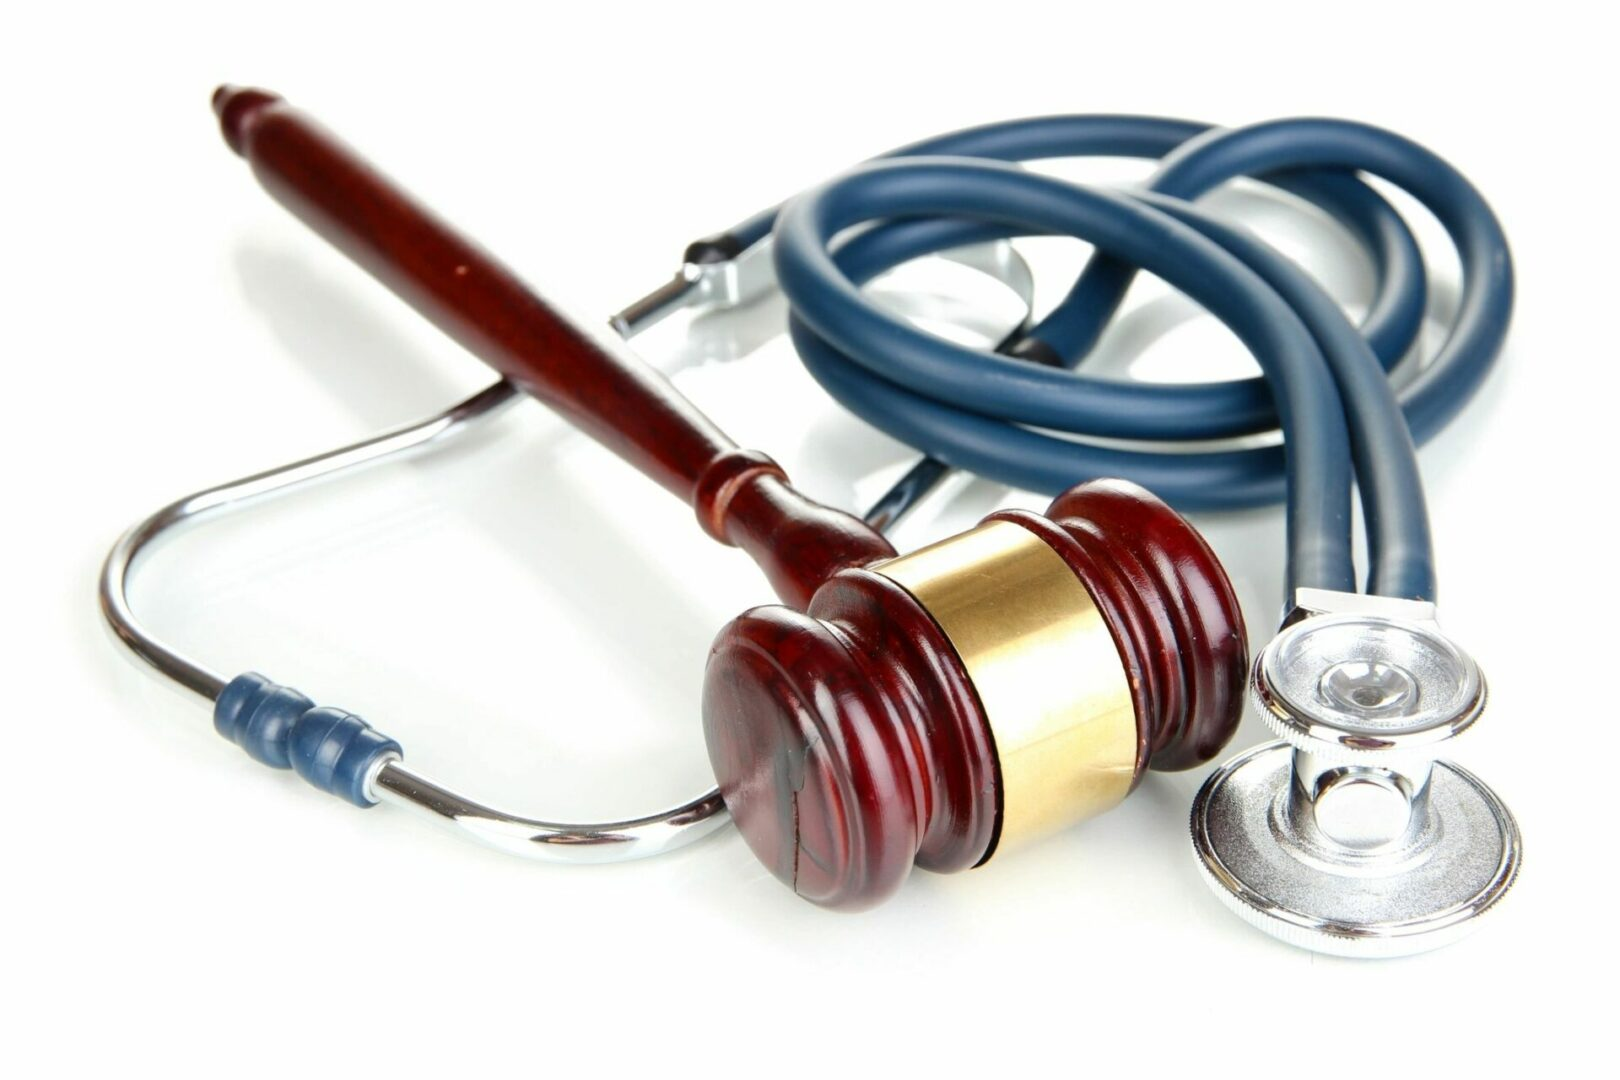 Tools used as evidence for medical malpractice loans